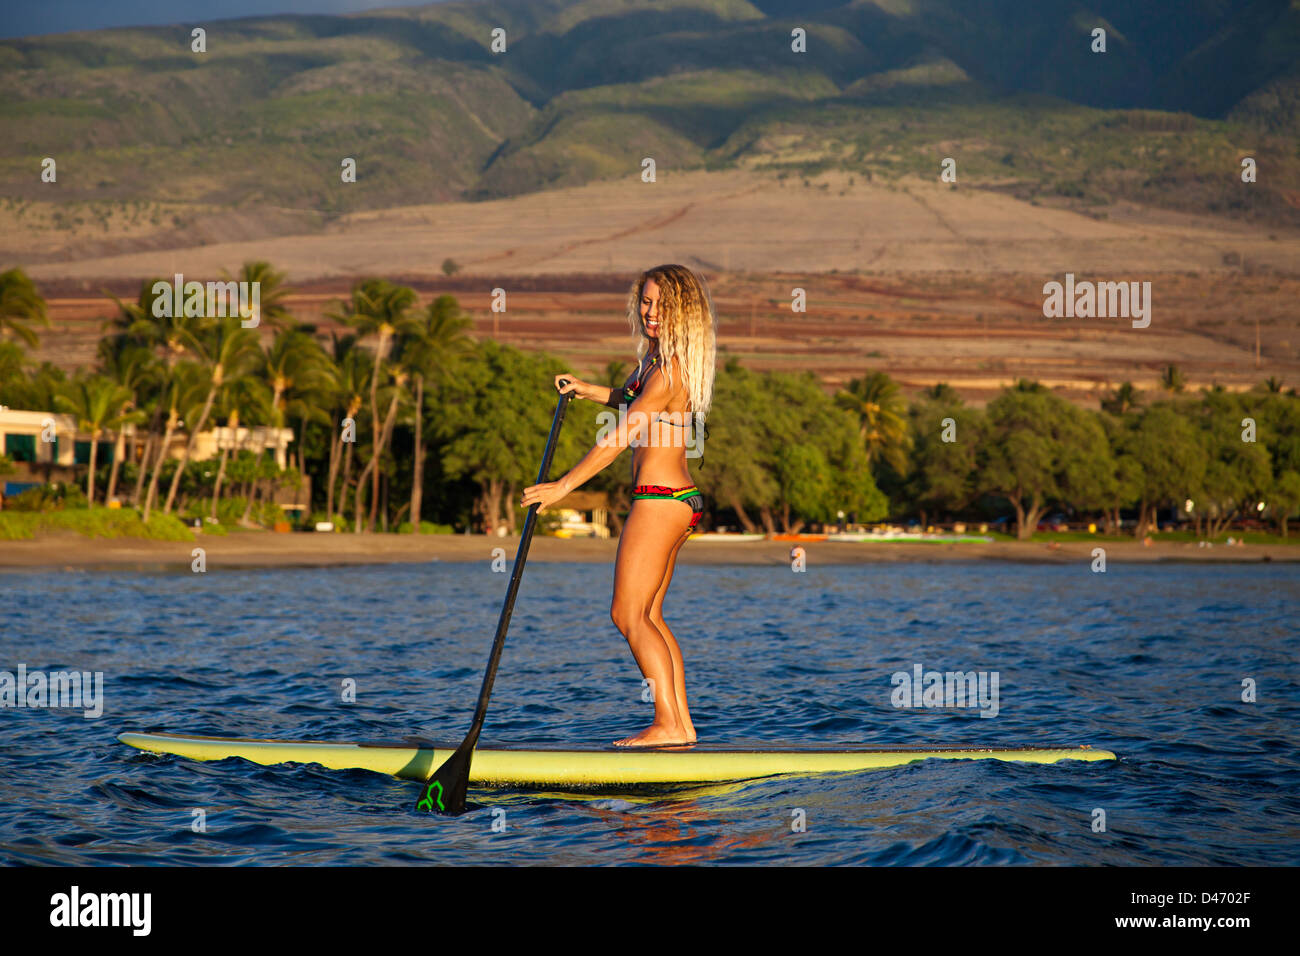 Surf instructor Tara Angioletti on a stand-up paddle board off Canoe Beach, Maui. Hawaii. Image is model released. - Stock Image